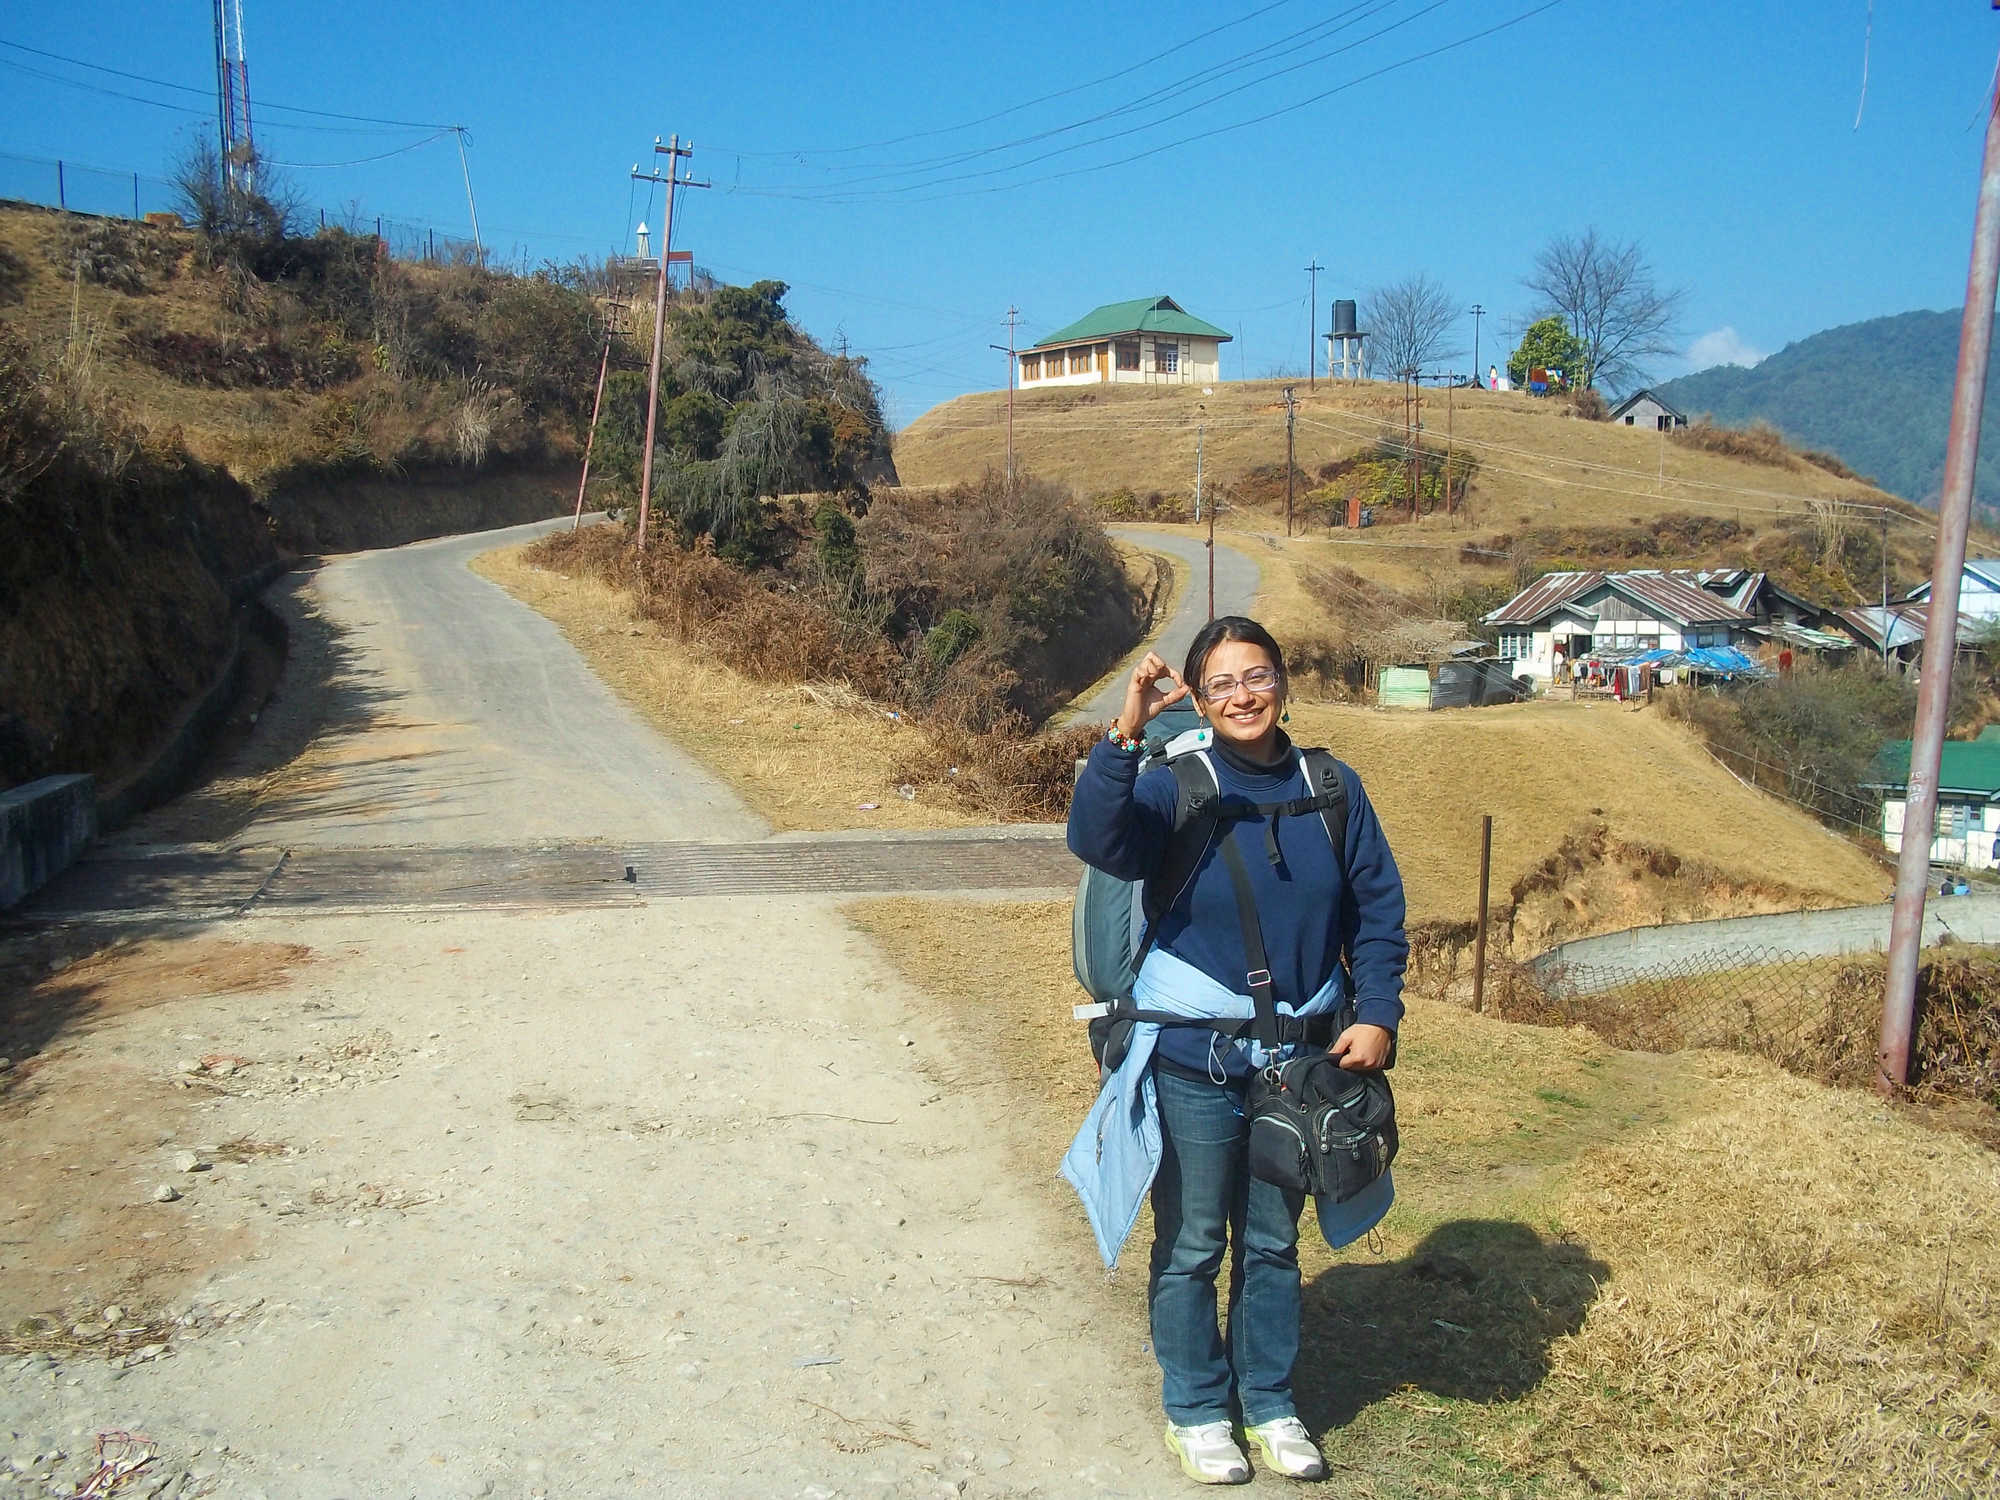 Is northeast India safe for solo women travelers?